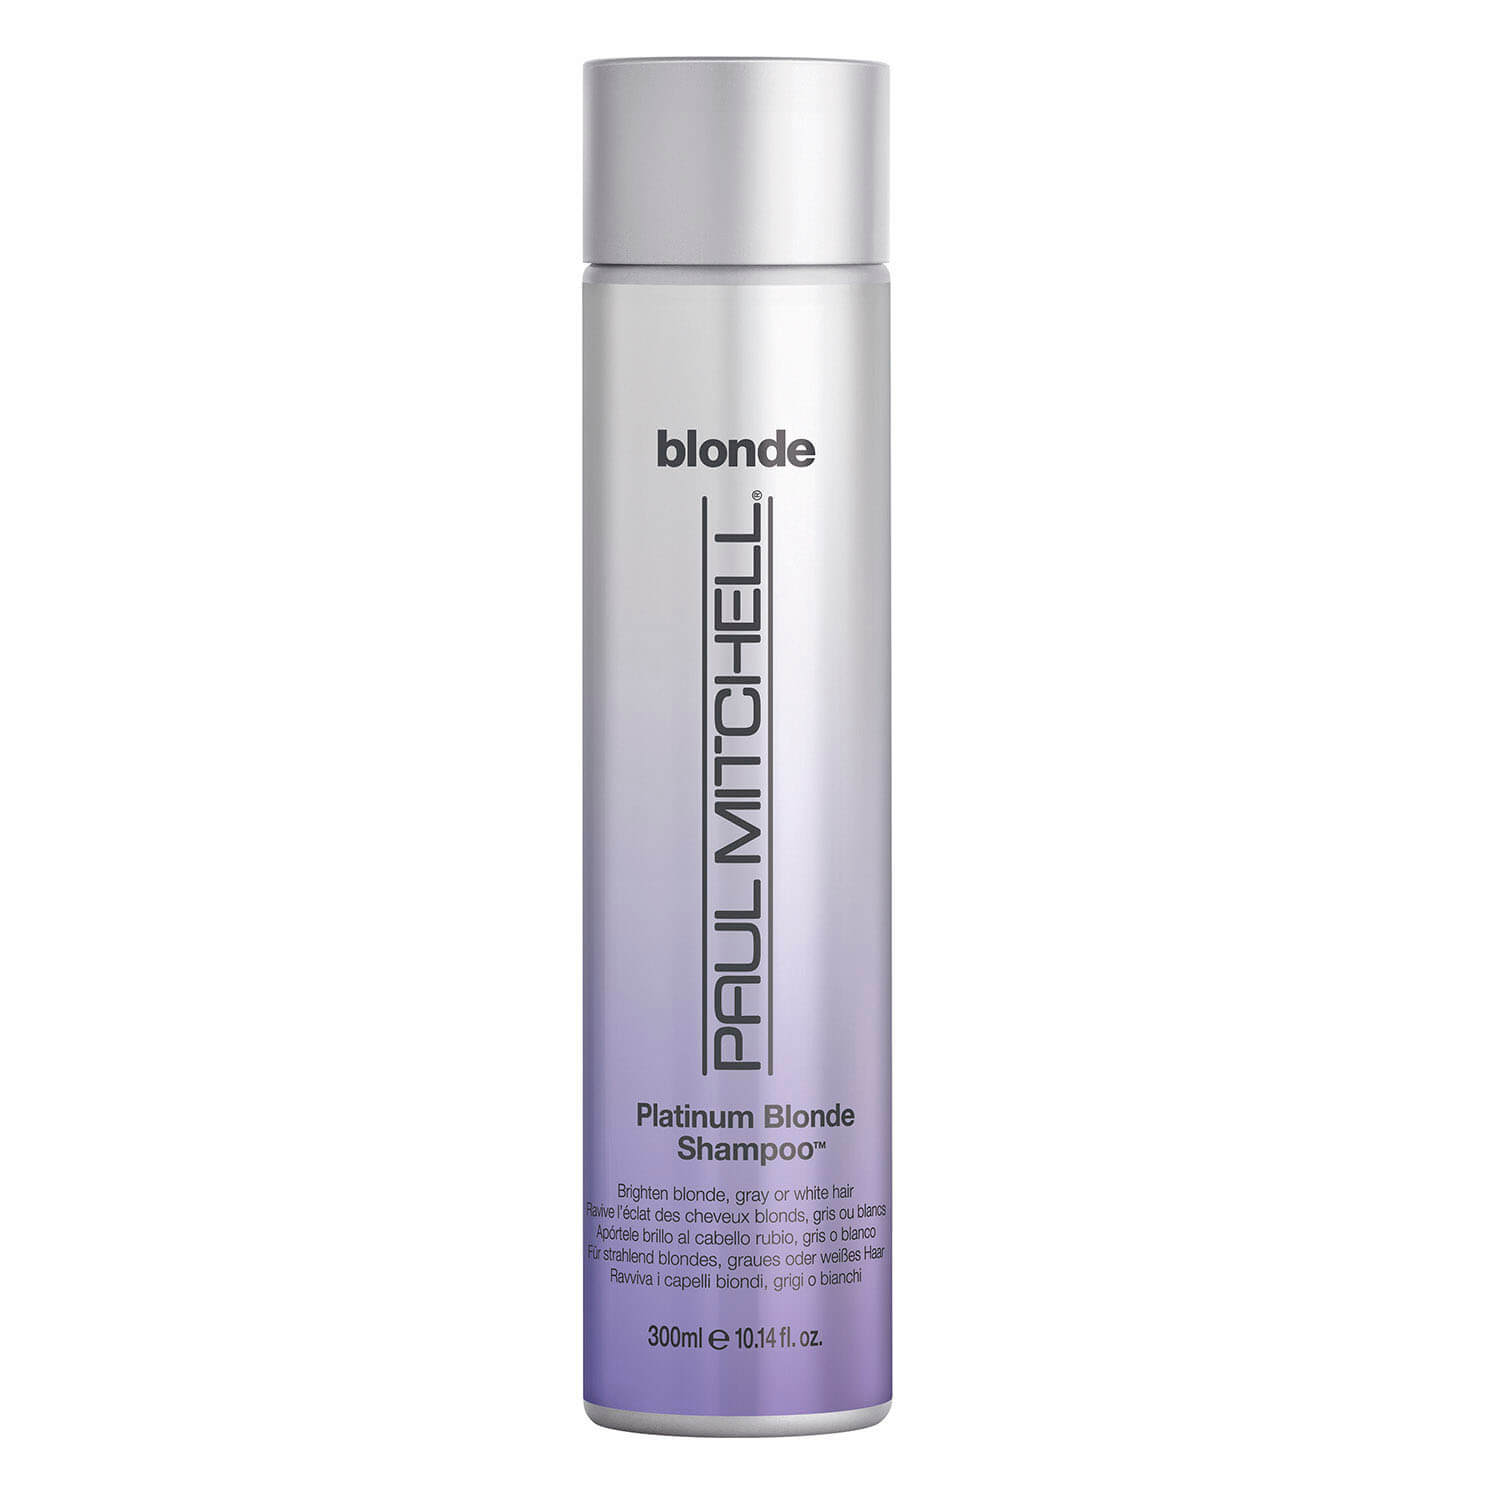 Forever Blonde - Platinum Blonde Shampoo - 300ml